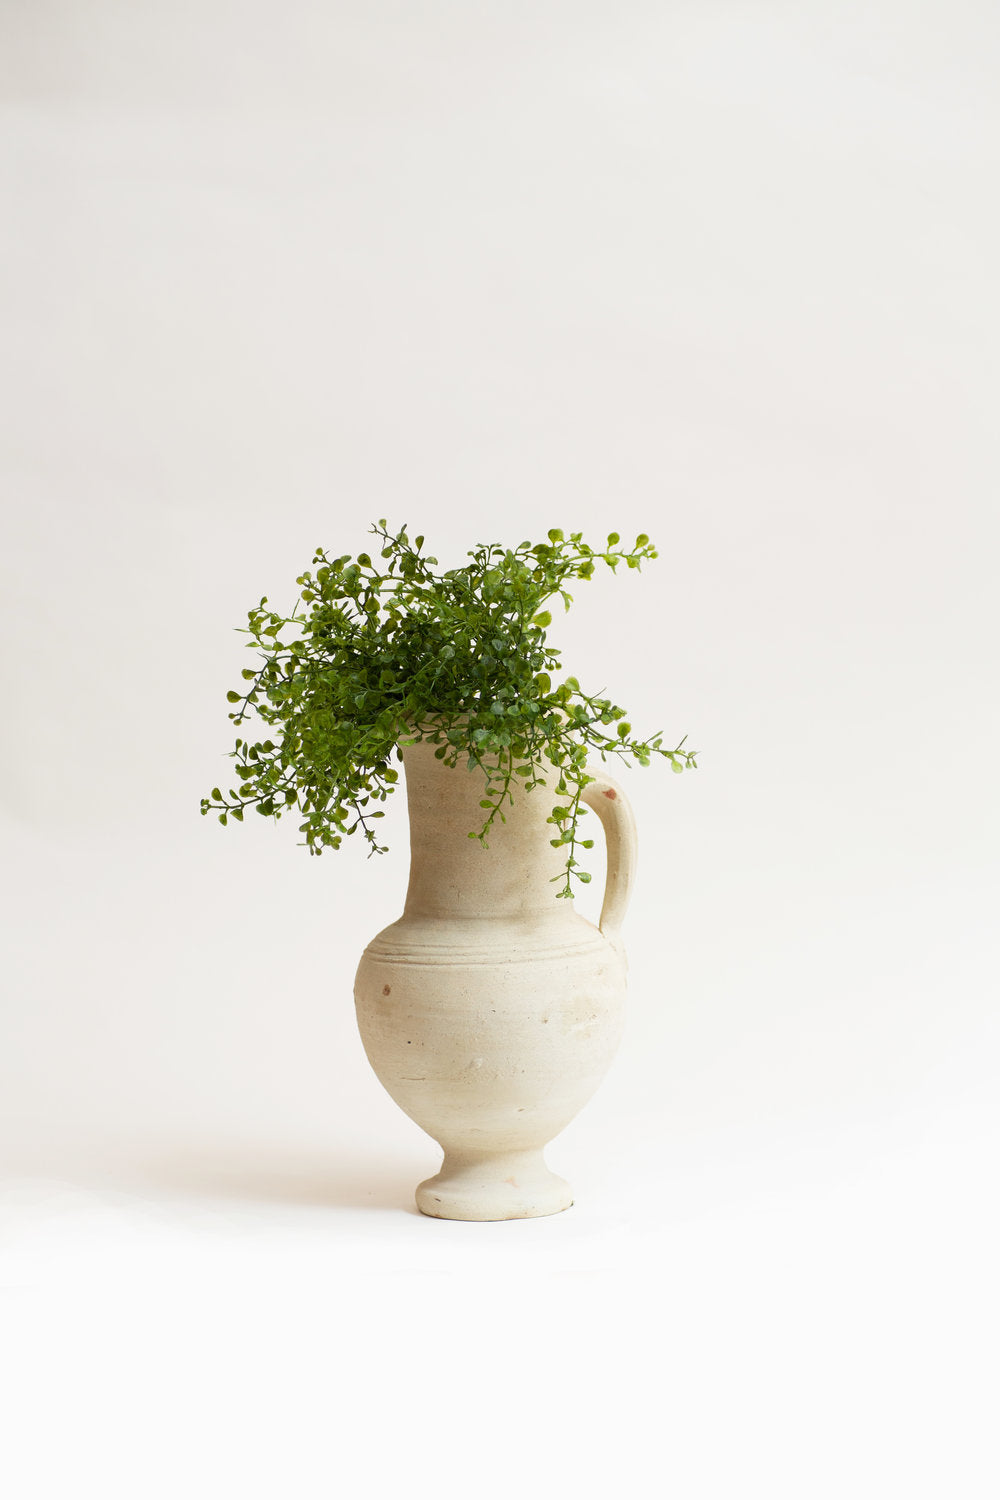 Ceramic Potter with Greenery